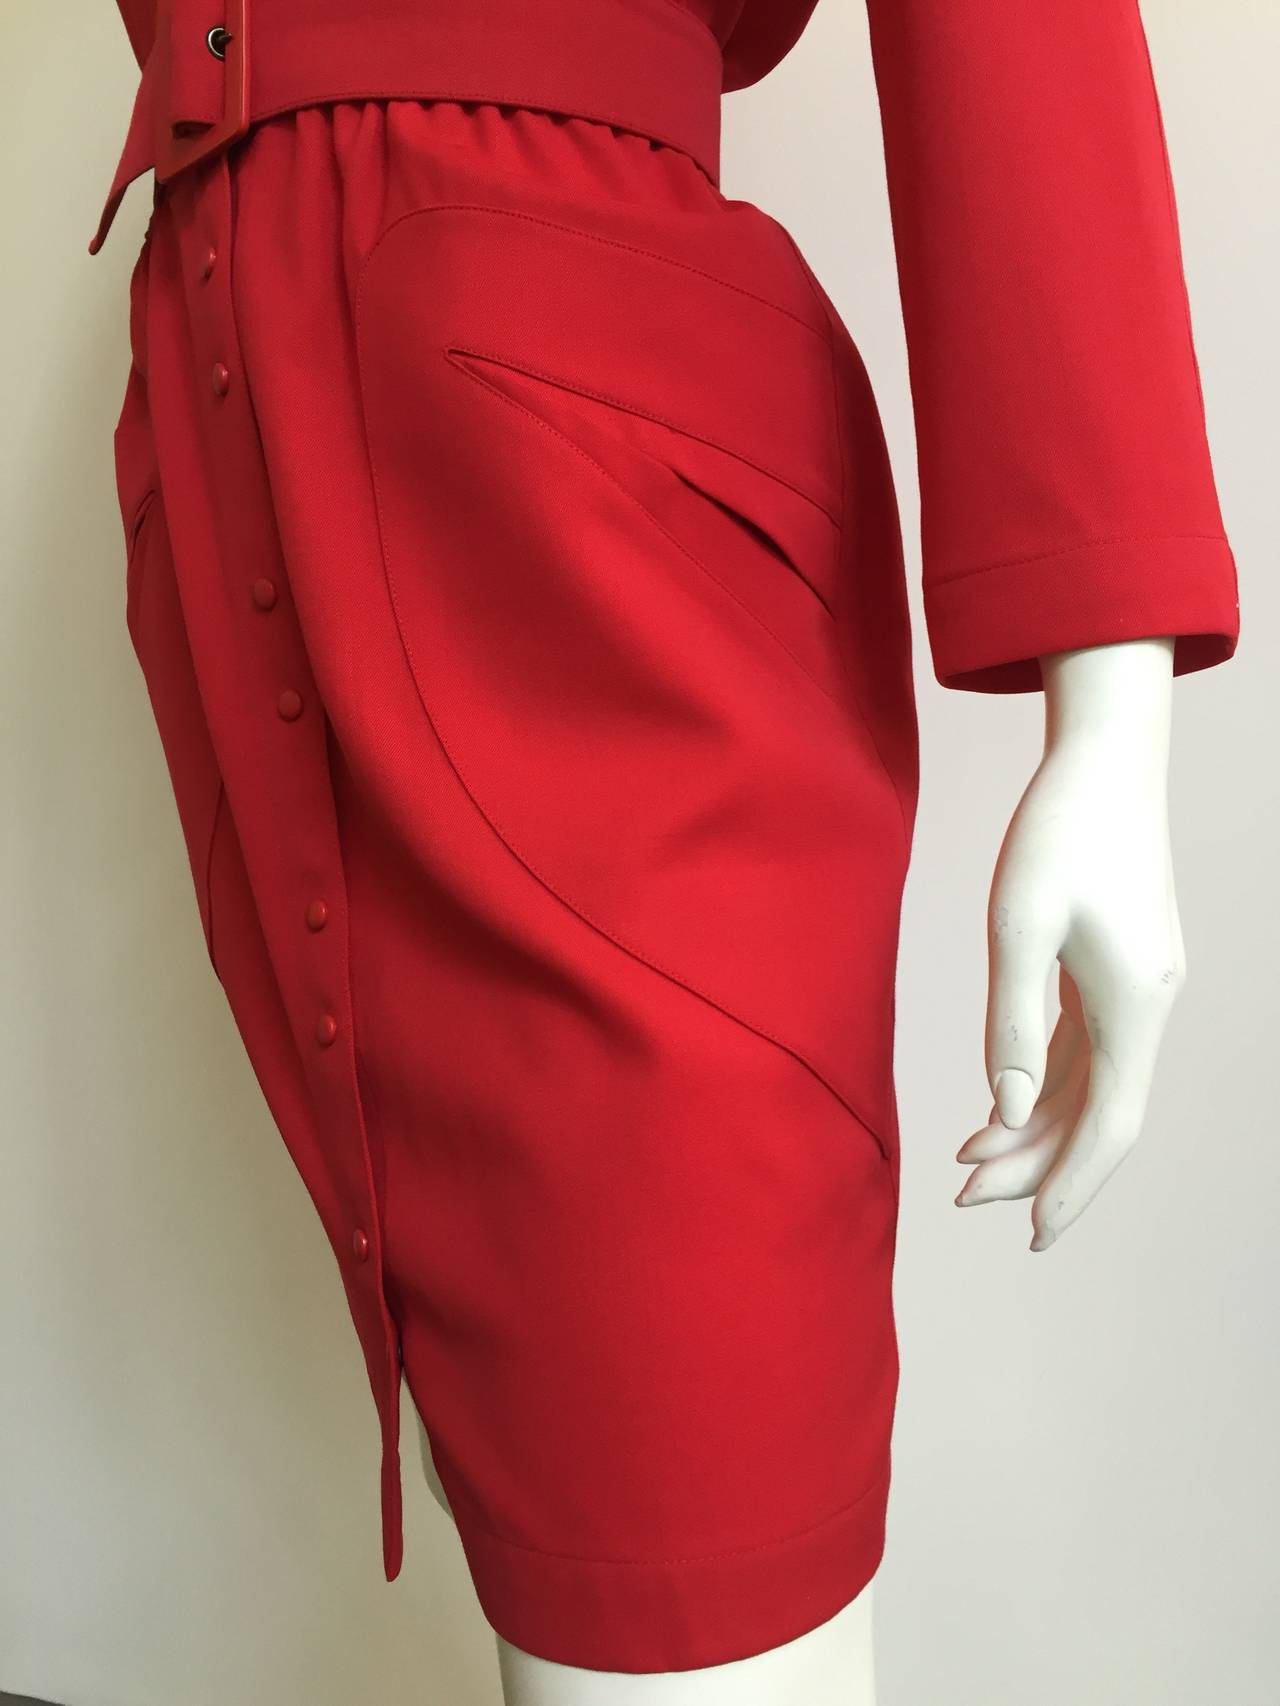 Thierry Mugler 80s Dress With Pockets Size 6. 9